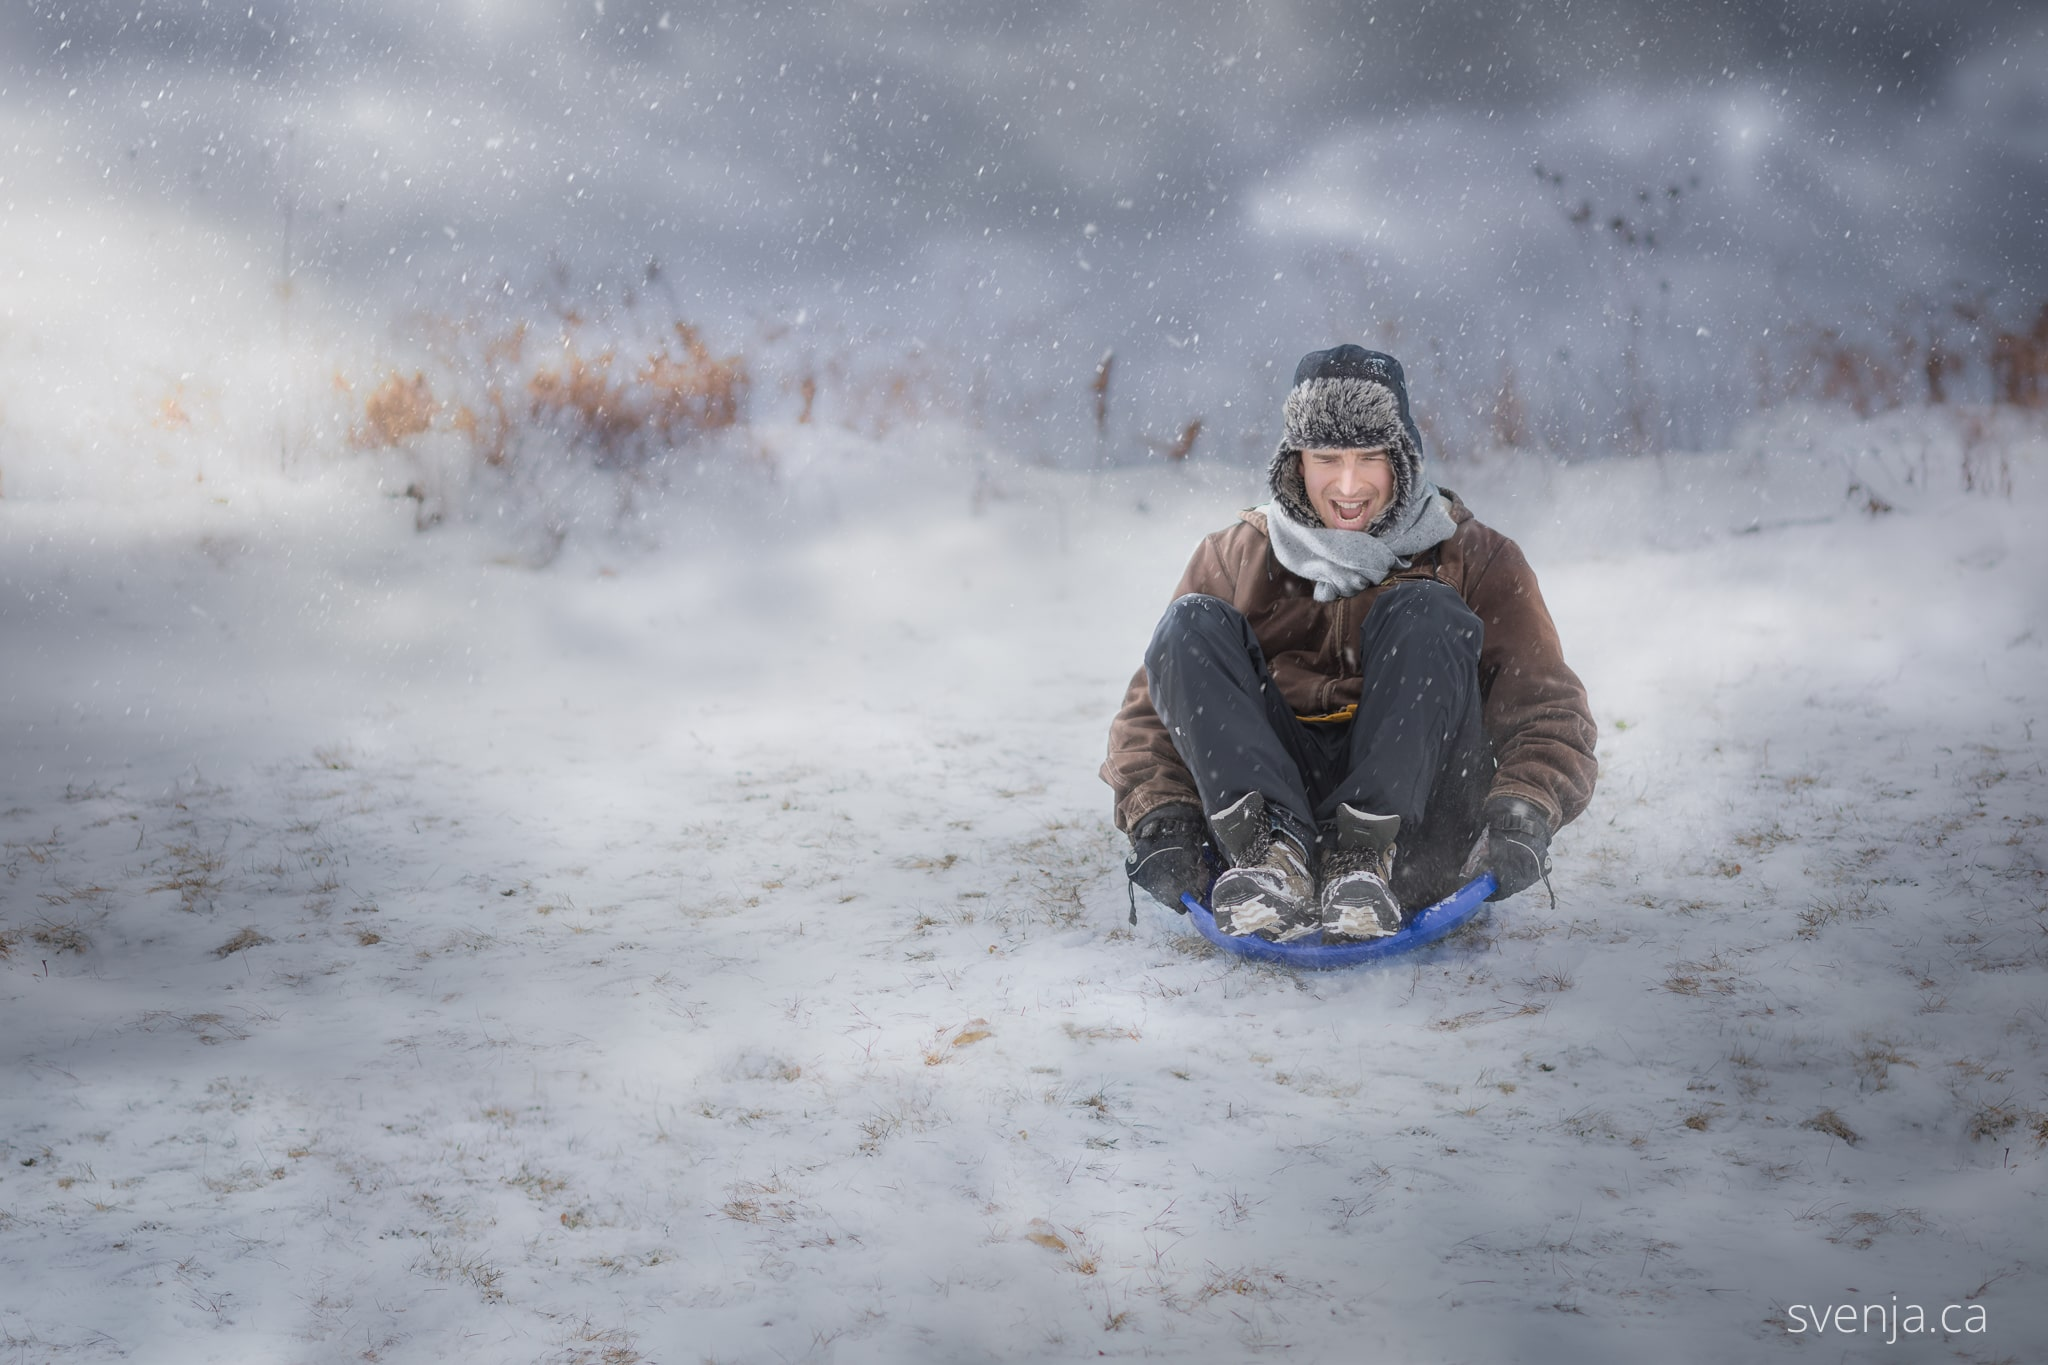 foolish man slides down a snowy hill in a child's toy